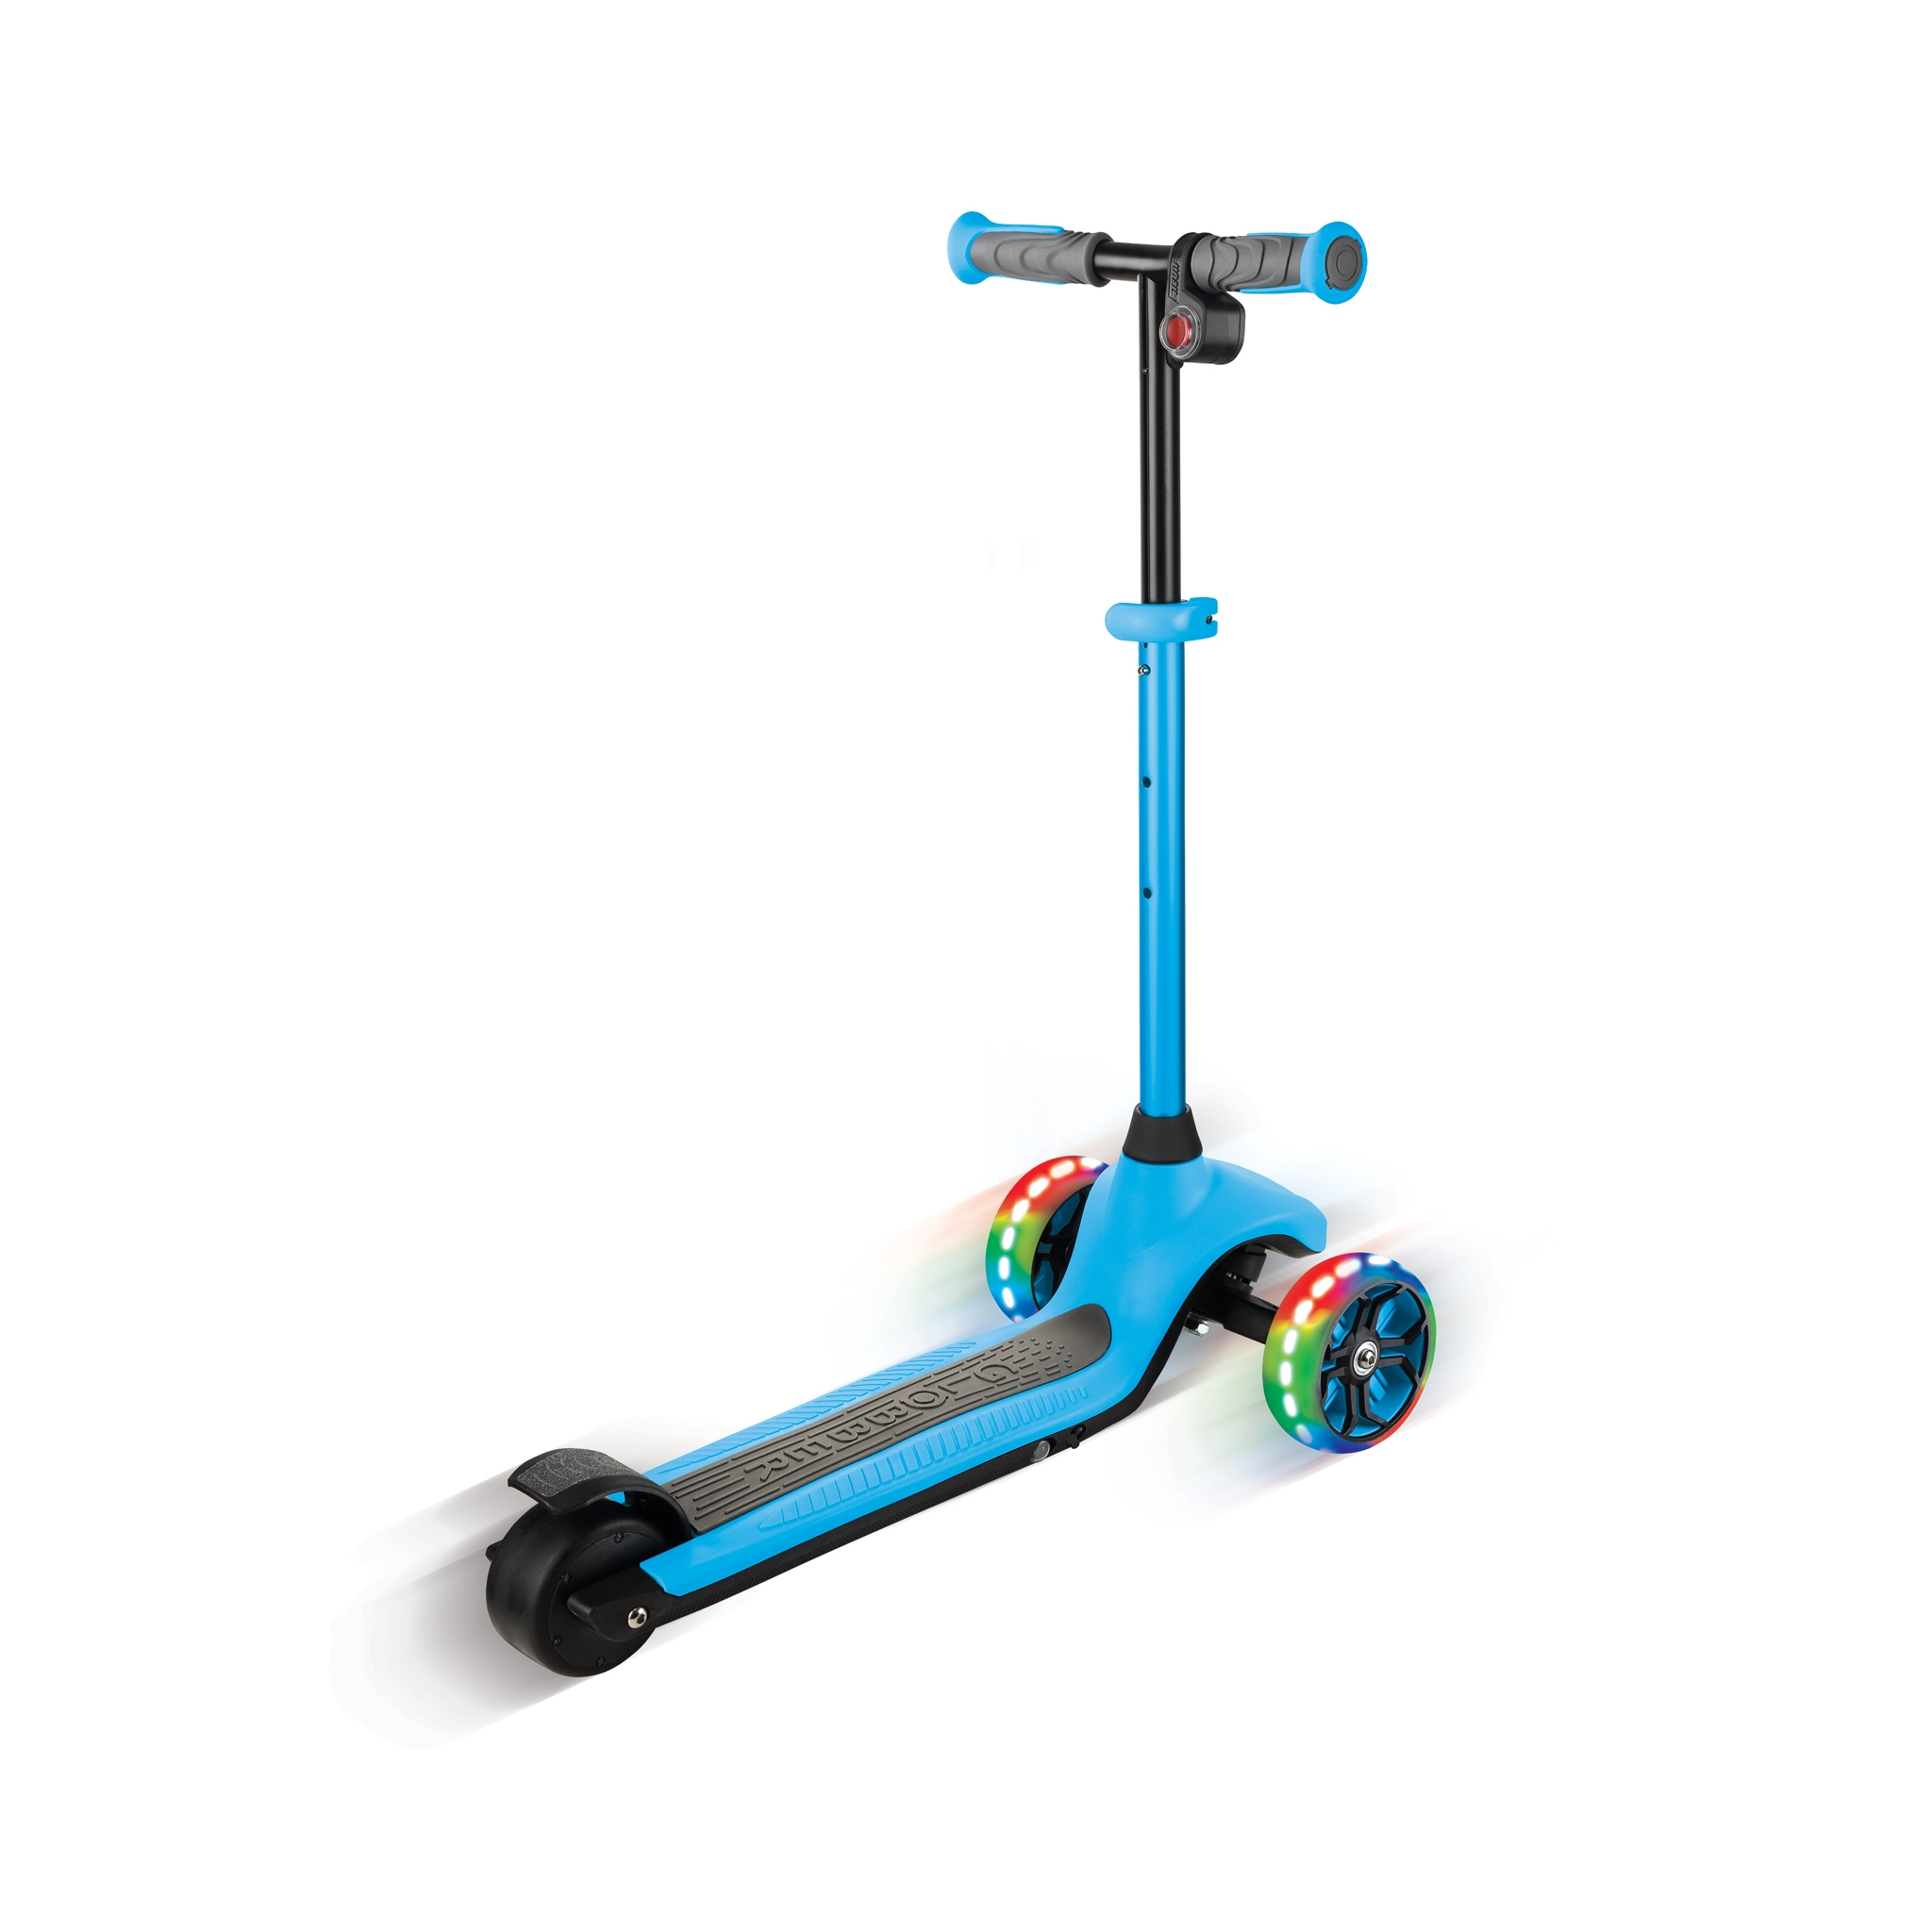 Globber-ONE-K-E-MOTION-4-award-winning-3-wheel-electric-scooter-for-boys-and-girls-with-dual-braking-system_sky-blue